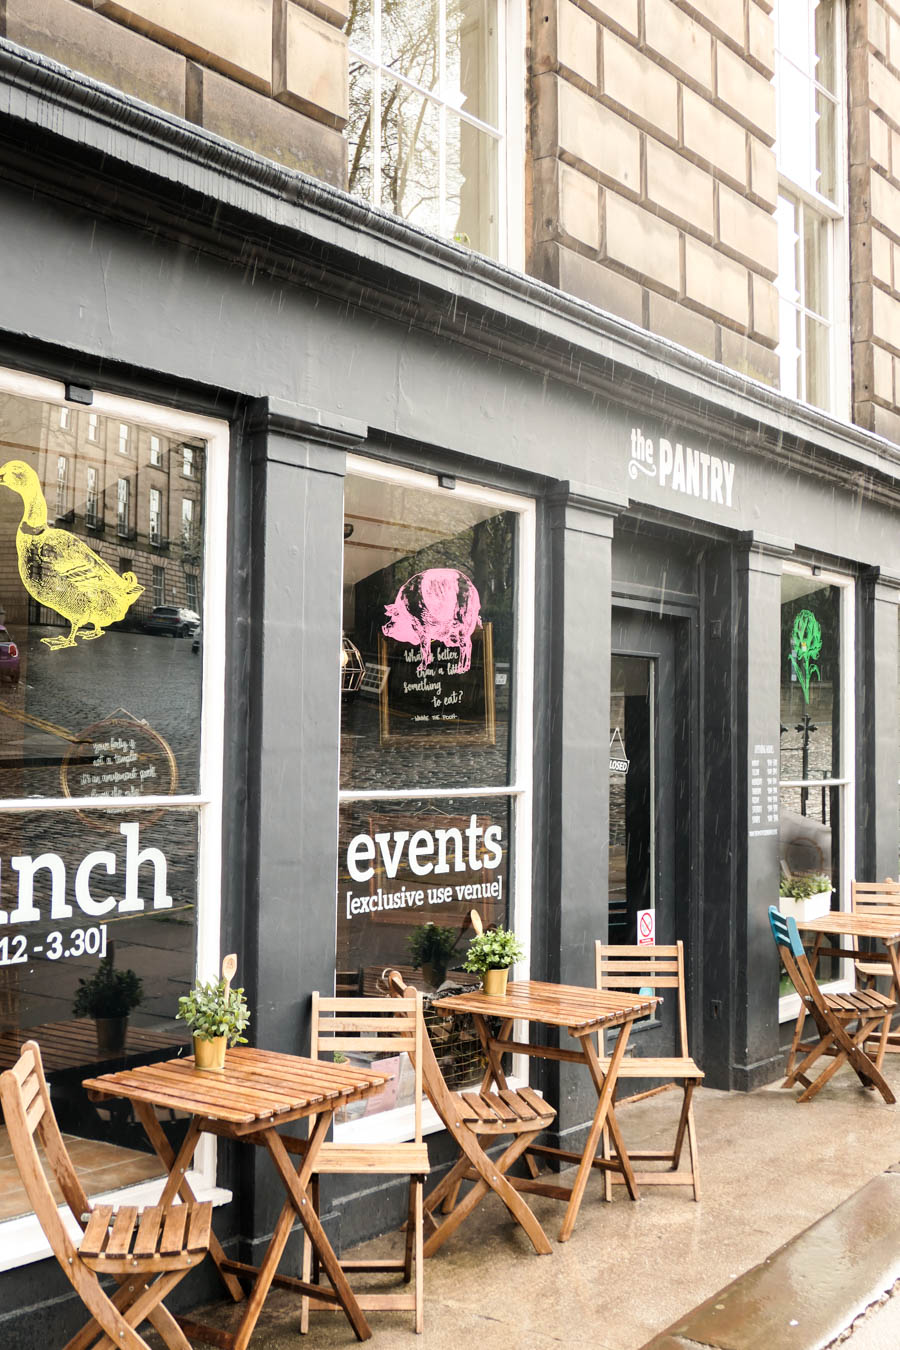 Stockbridge Edinburgh Restaurants Travel Guide - The Pantry Stockbridge - Best Breakfast in Edinburgh